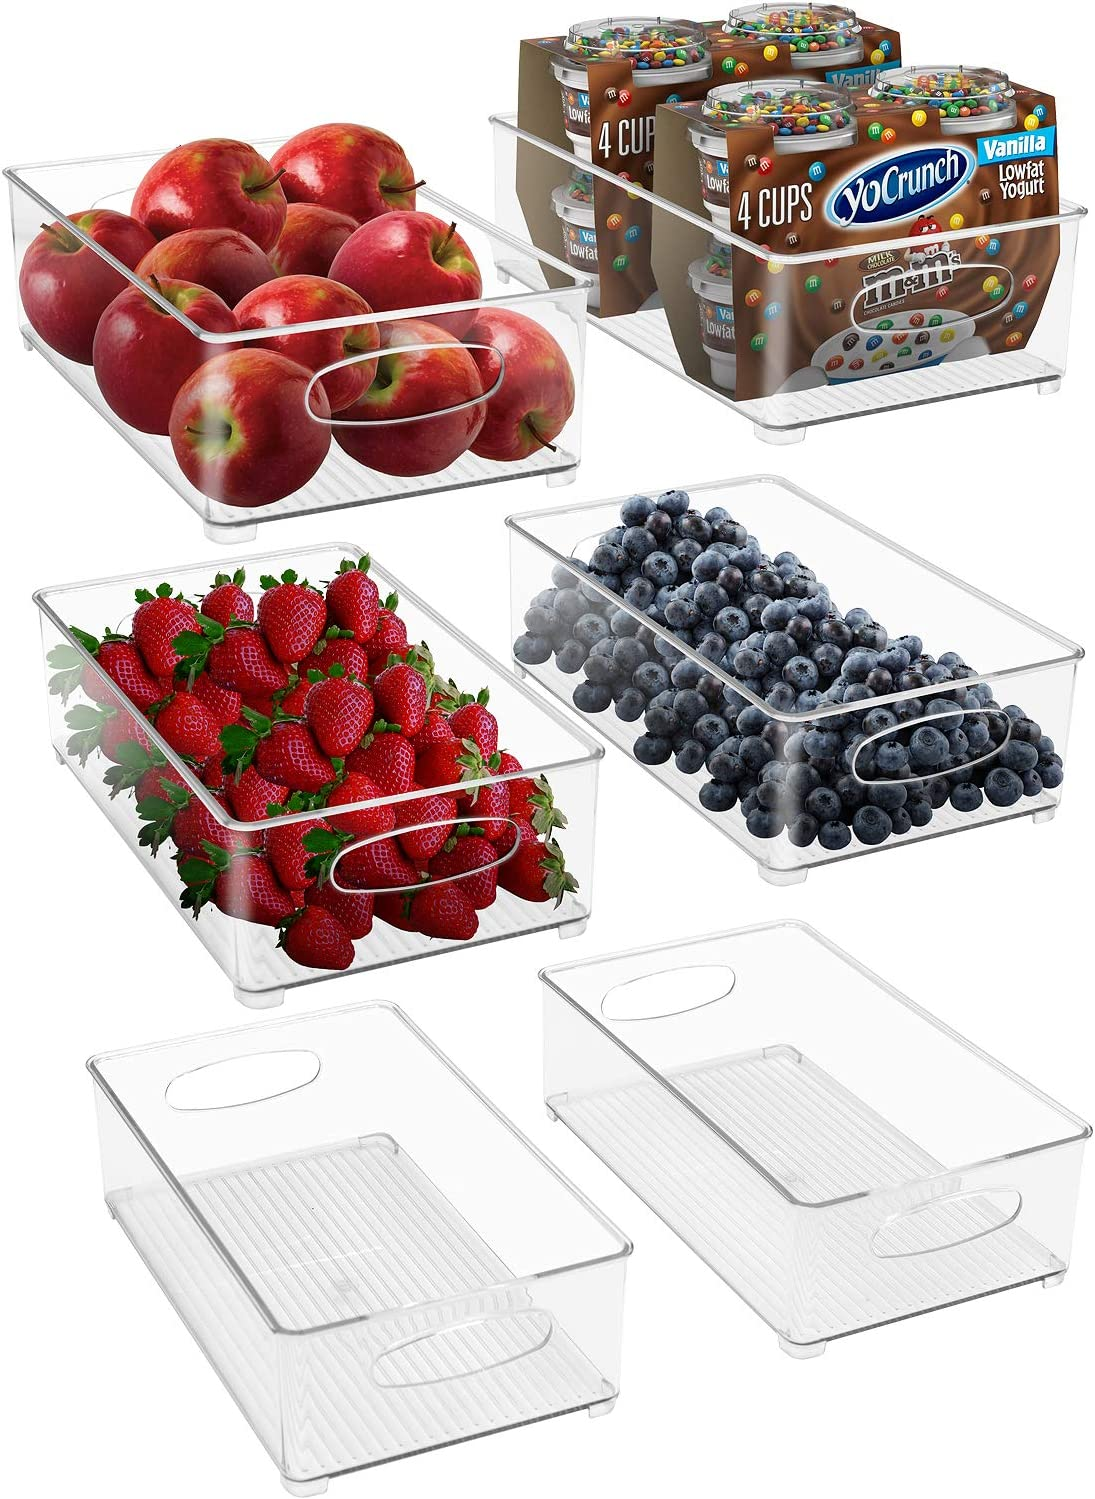 Sorbus Plastic Storage Bins Stackable Clear Pantry Organizer Box Bin Containers for Organizing Kitchen Fridge, Food, Snack Pantry Cabinet, Fruit, Vegetables, (Wide - Pack of 6)